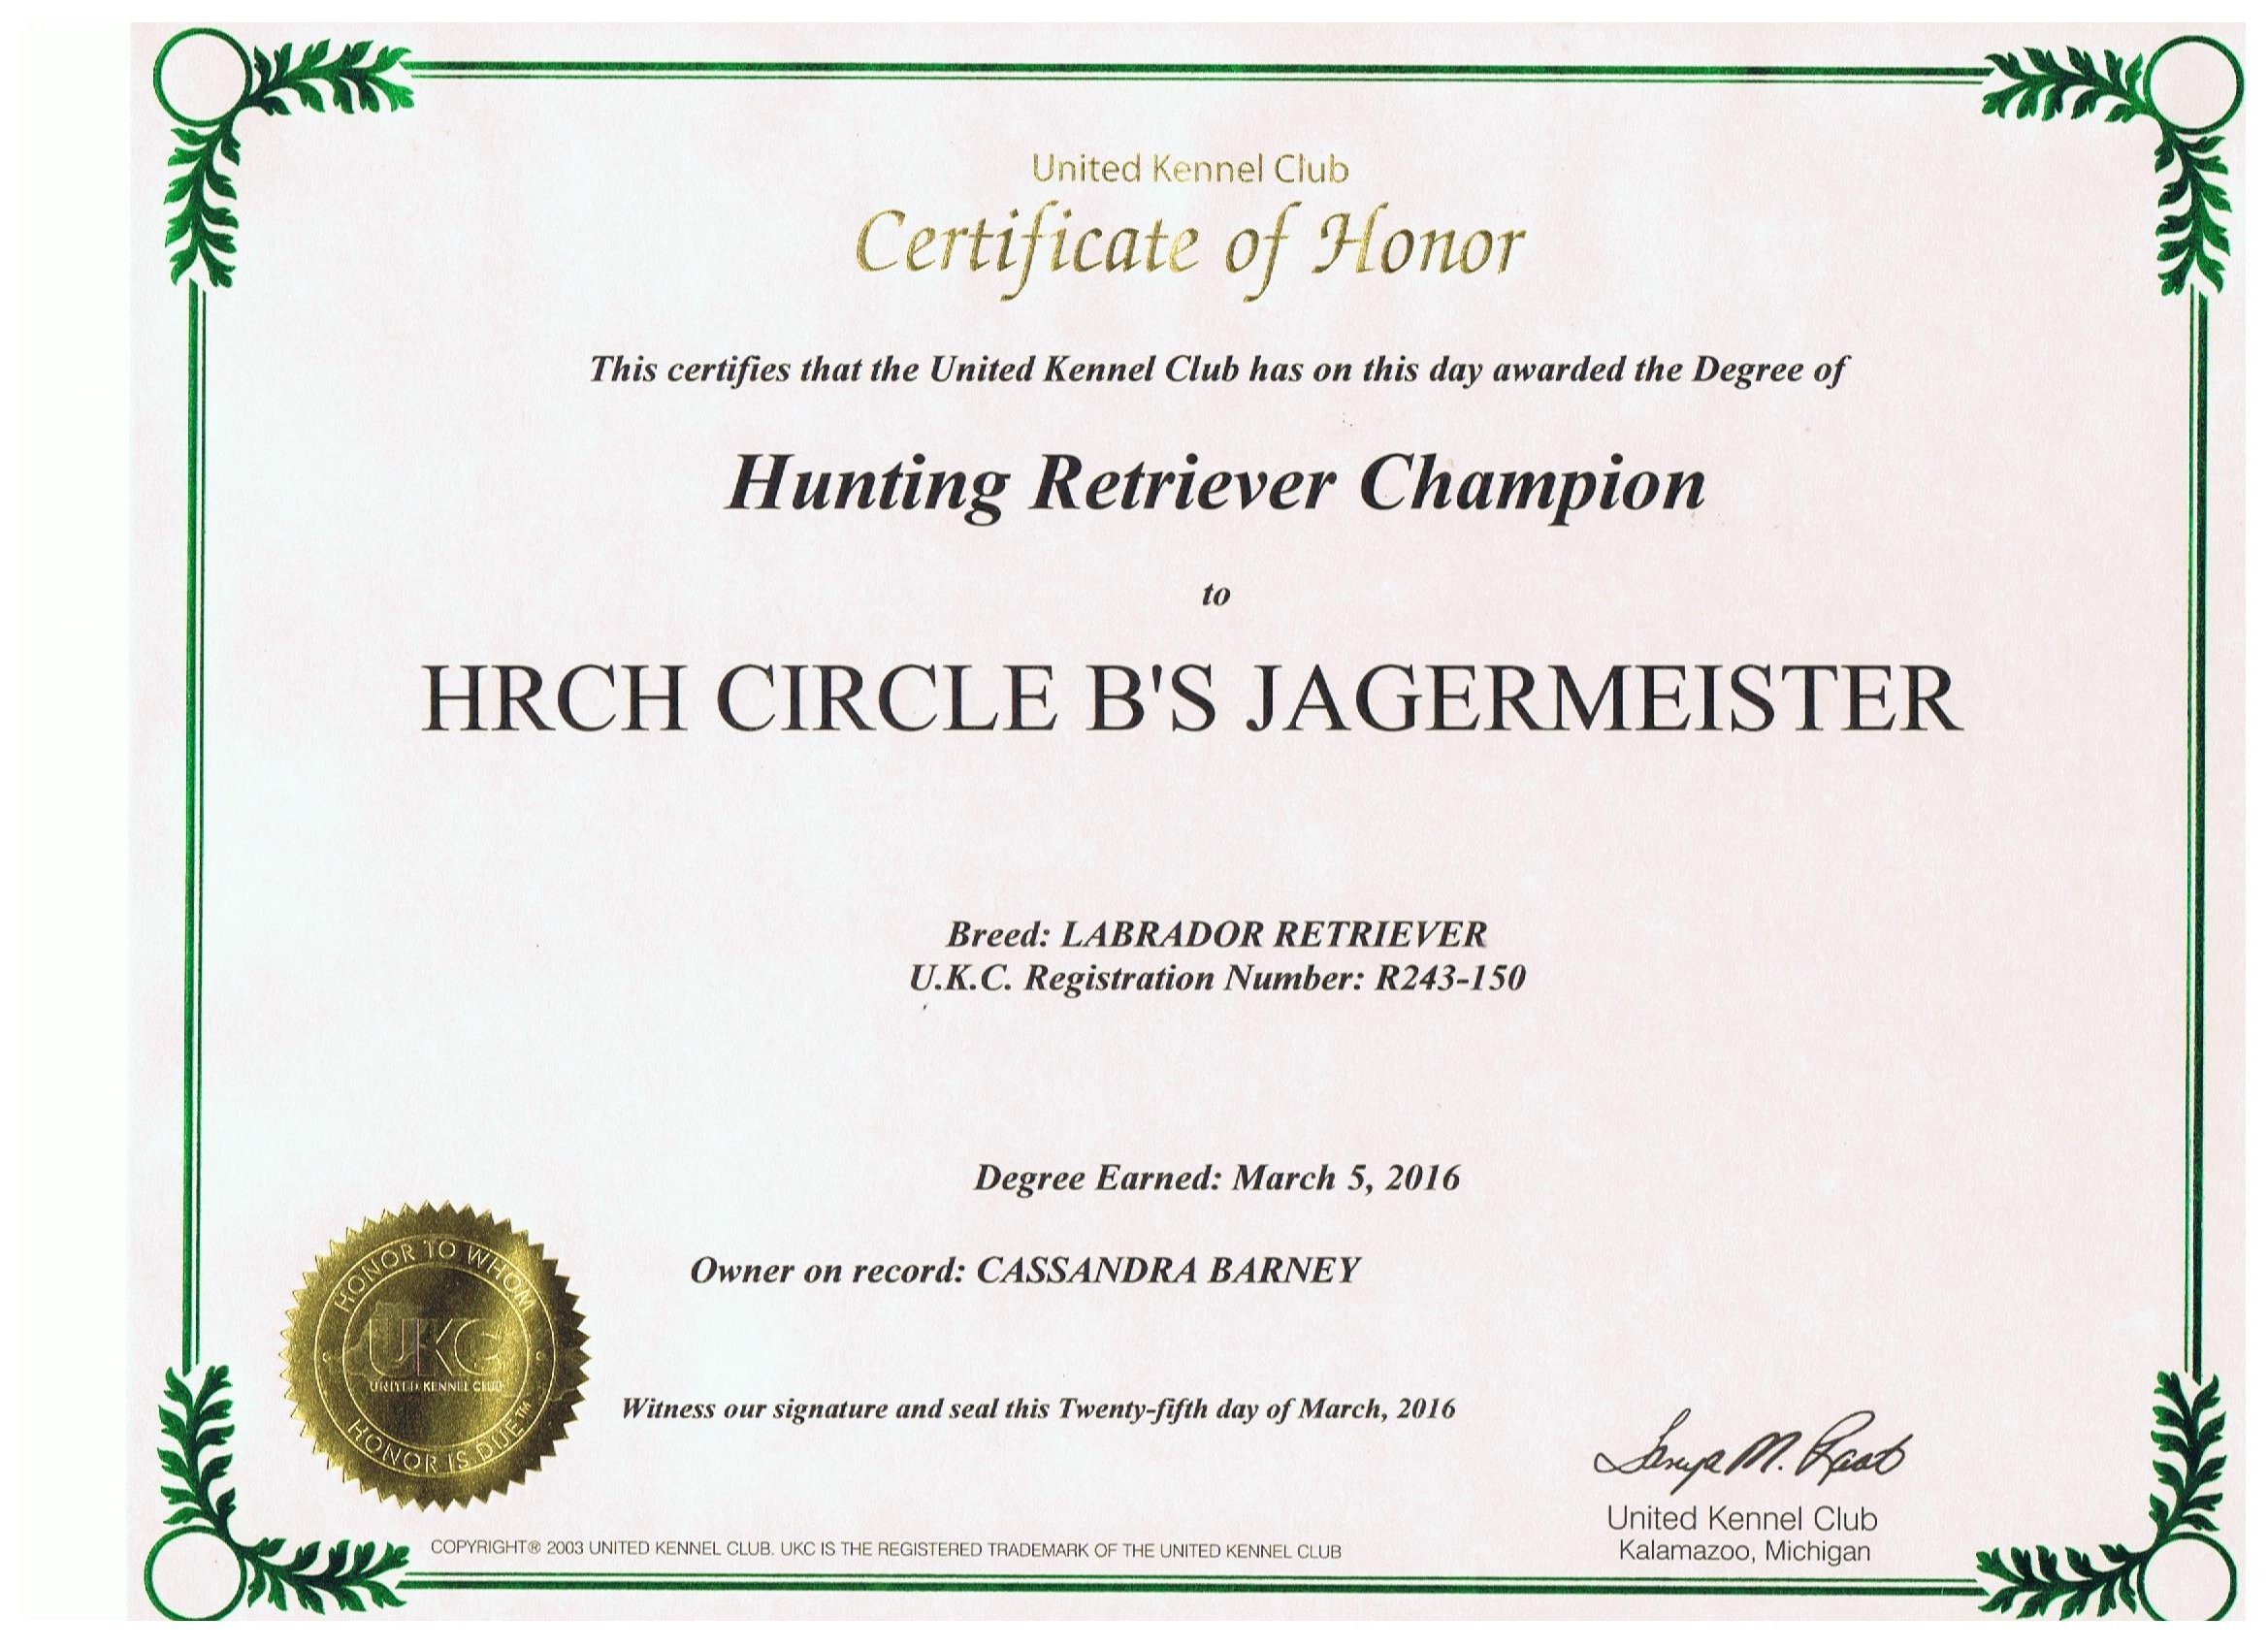 Jager's Certificate for Hunting Retriever Champion.